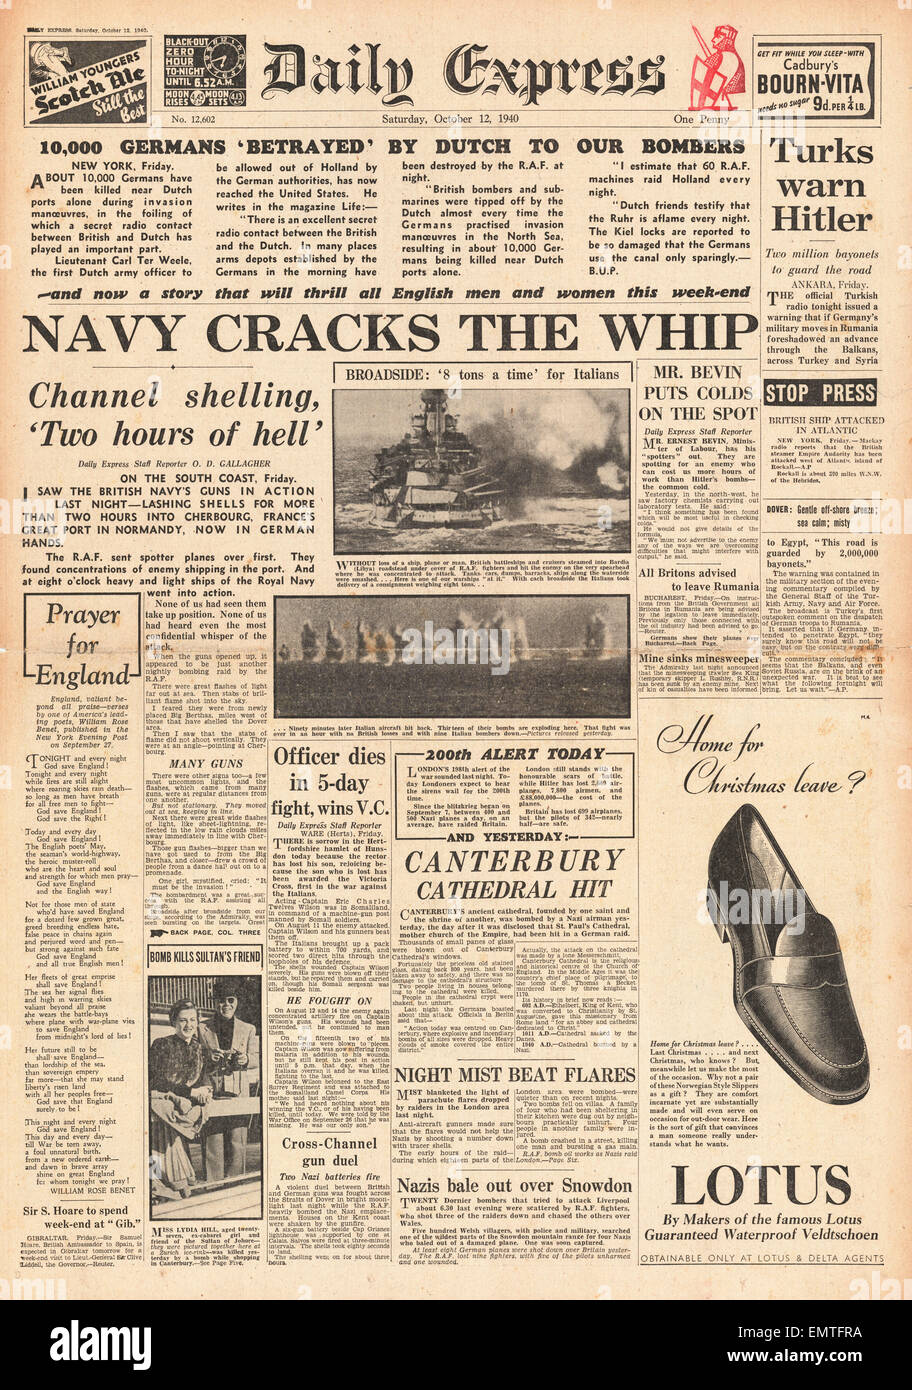 1940 front page Daily Express Royal Navy bombard Cherbourg - Stock Image